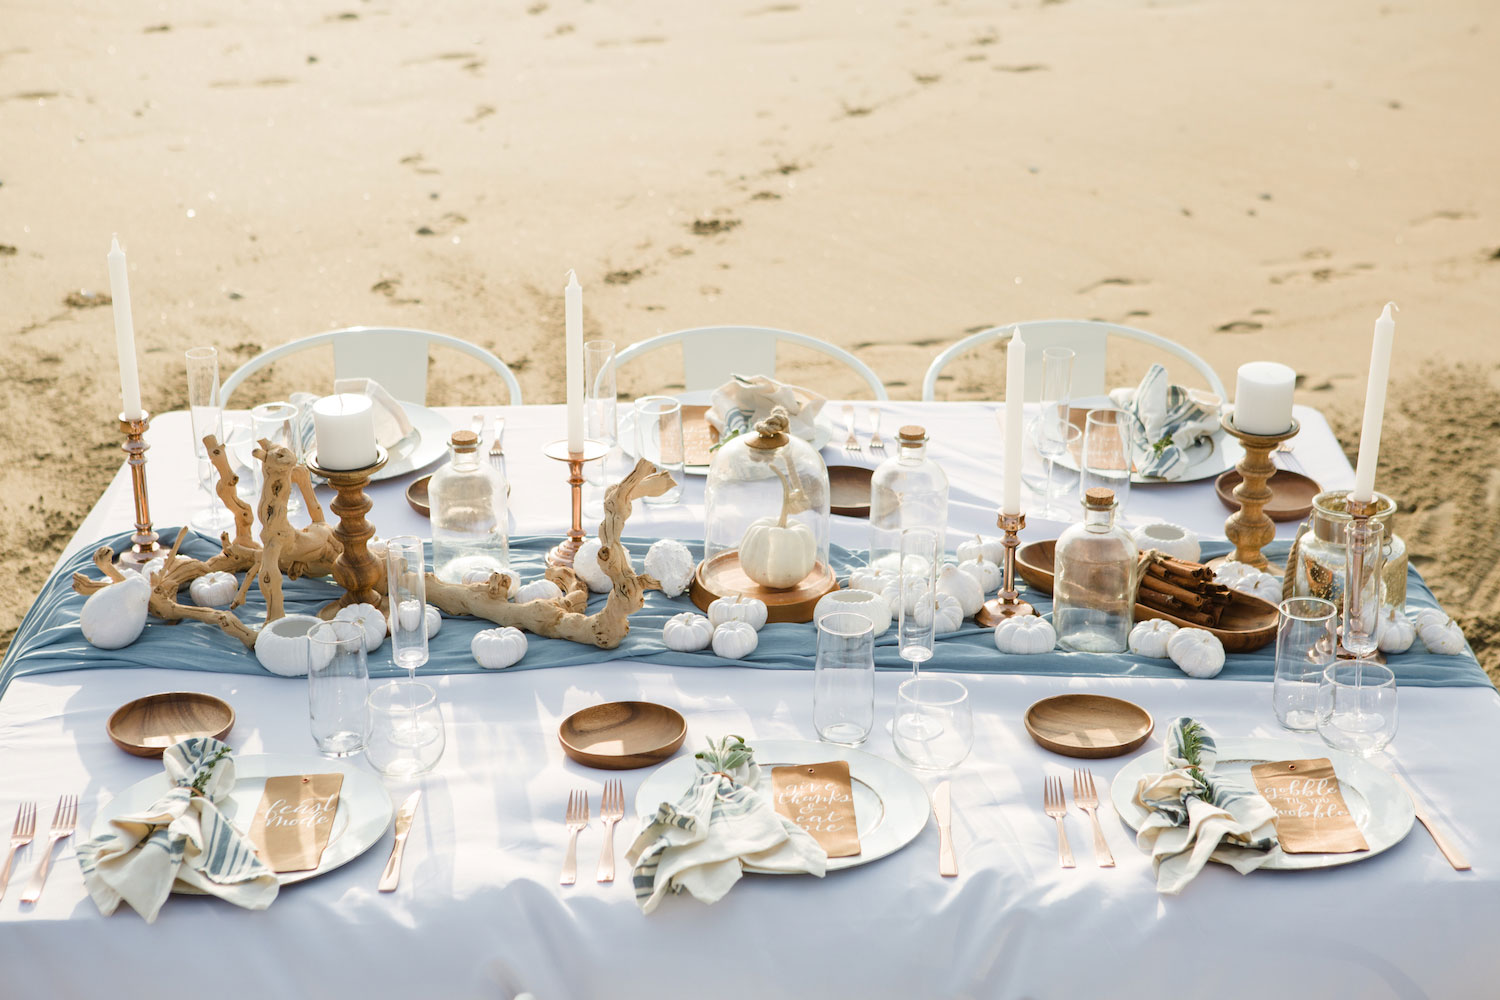 Beach table setting for thanksgiving southern caliifornia